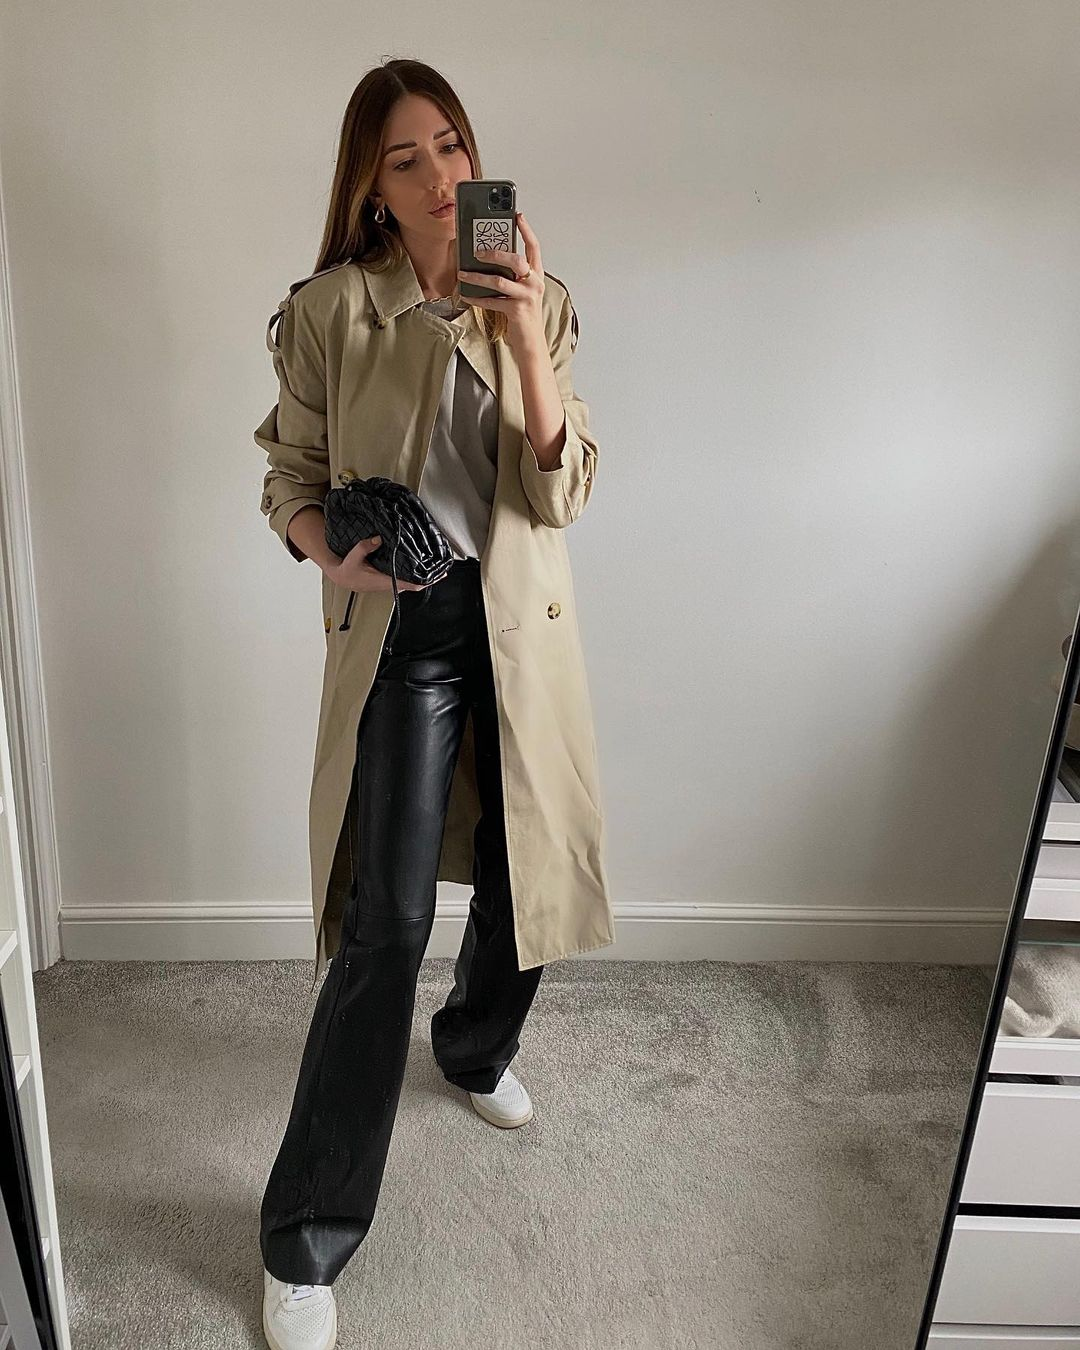 sophie-smith-mango-belt-cotton-blend-trench-instagram